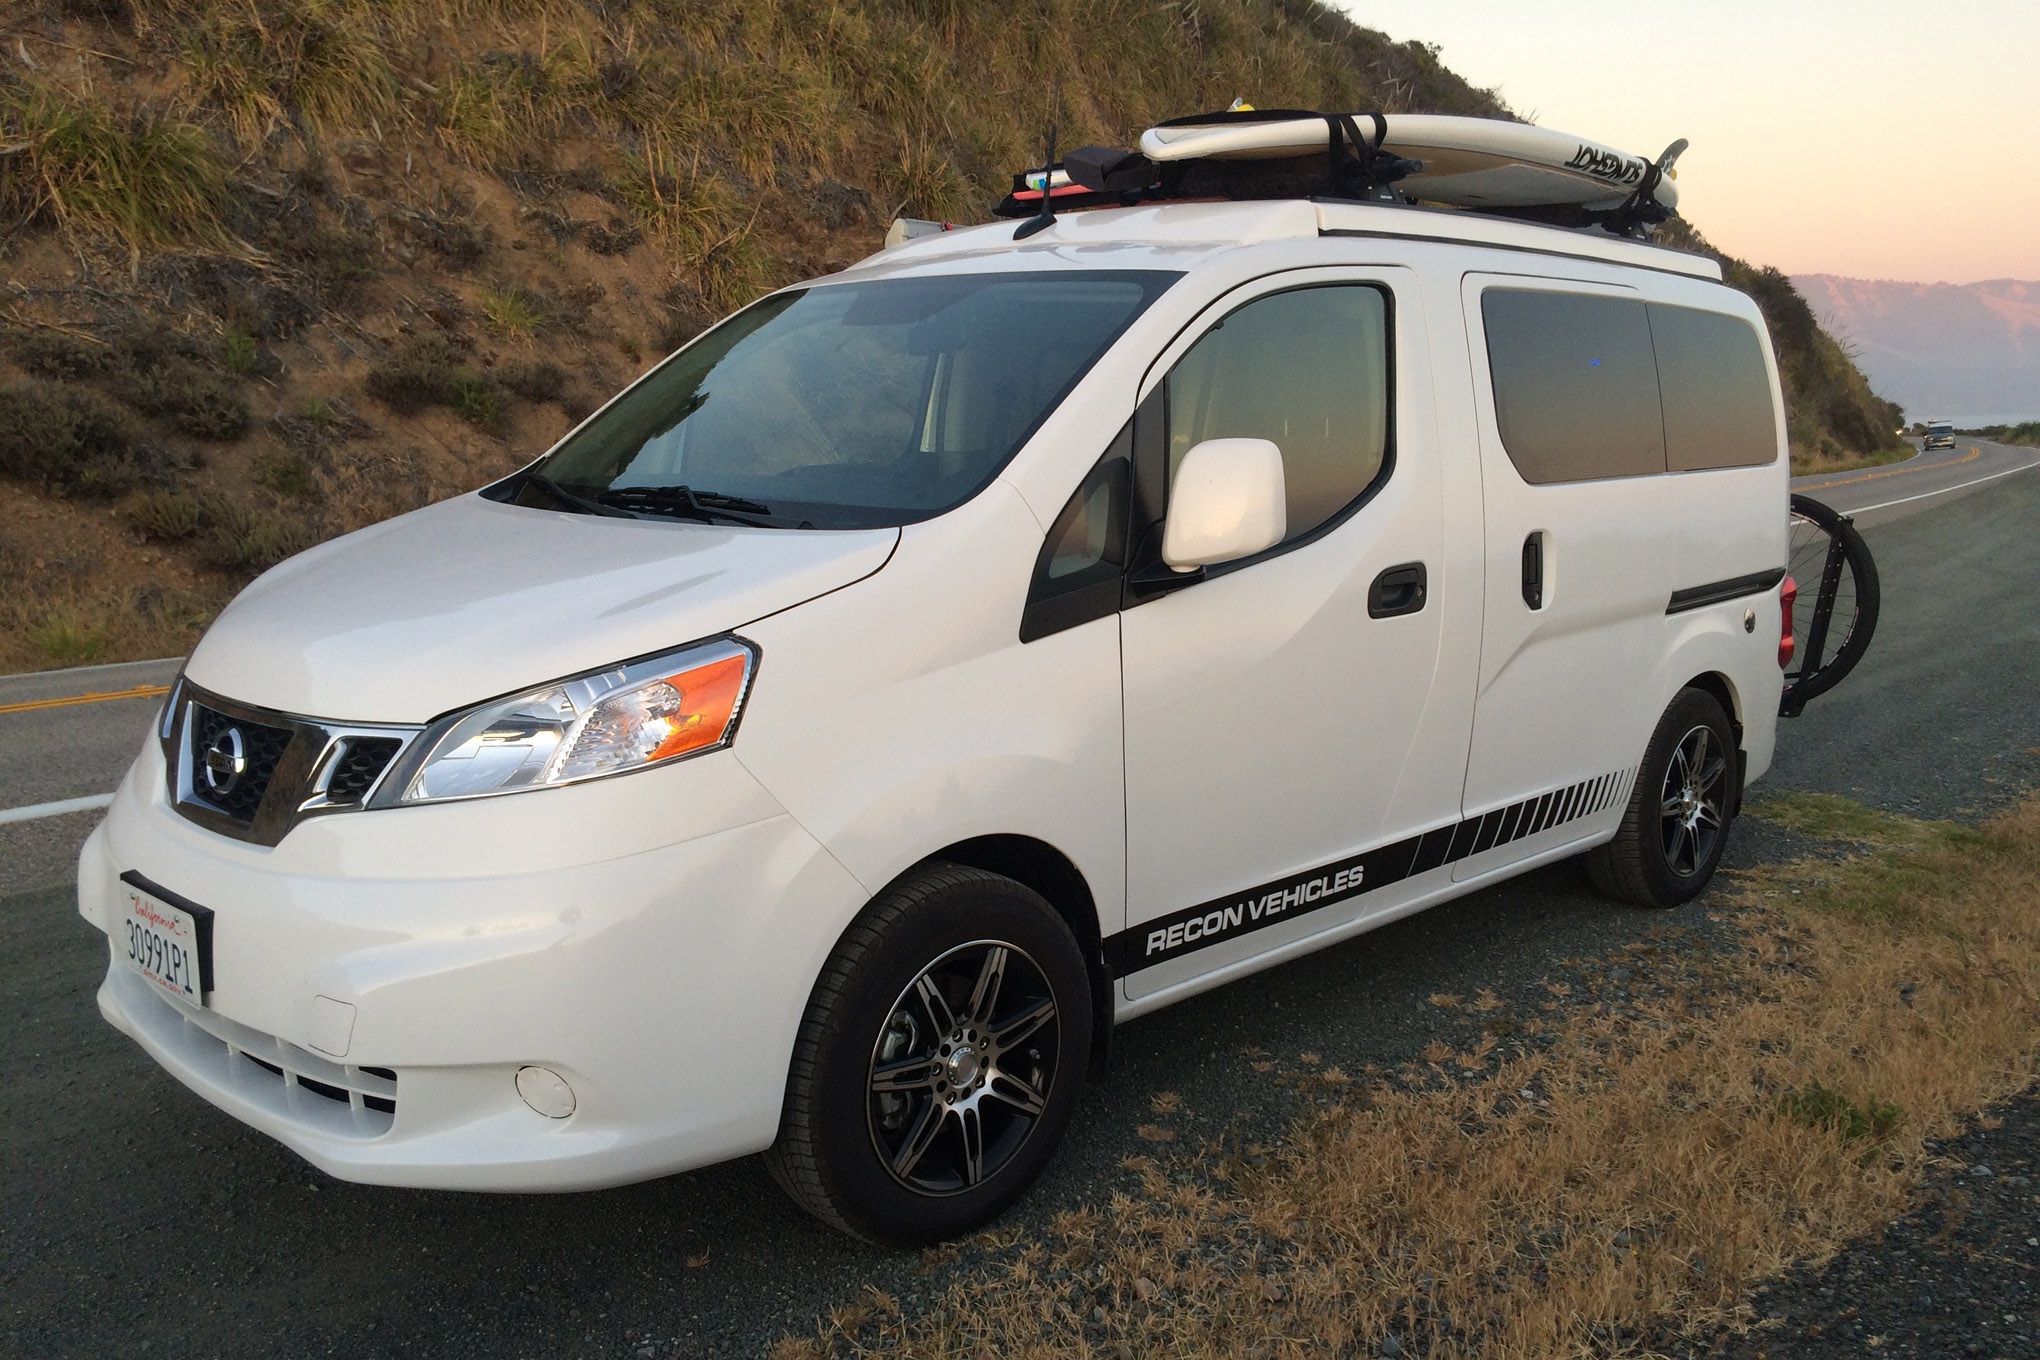 Nissan NV200 Recon Camper Van Review